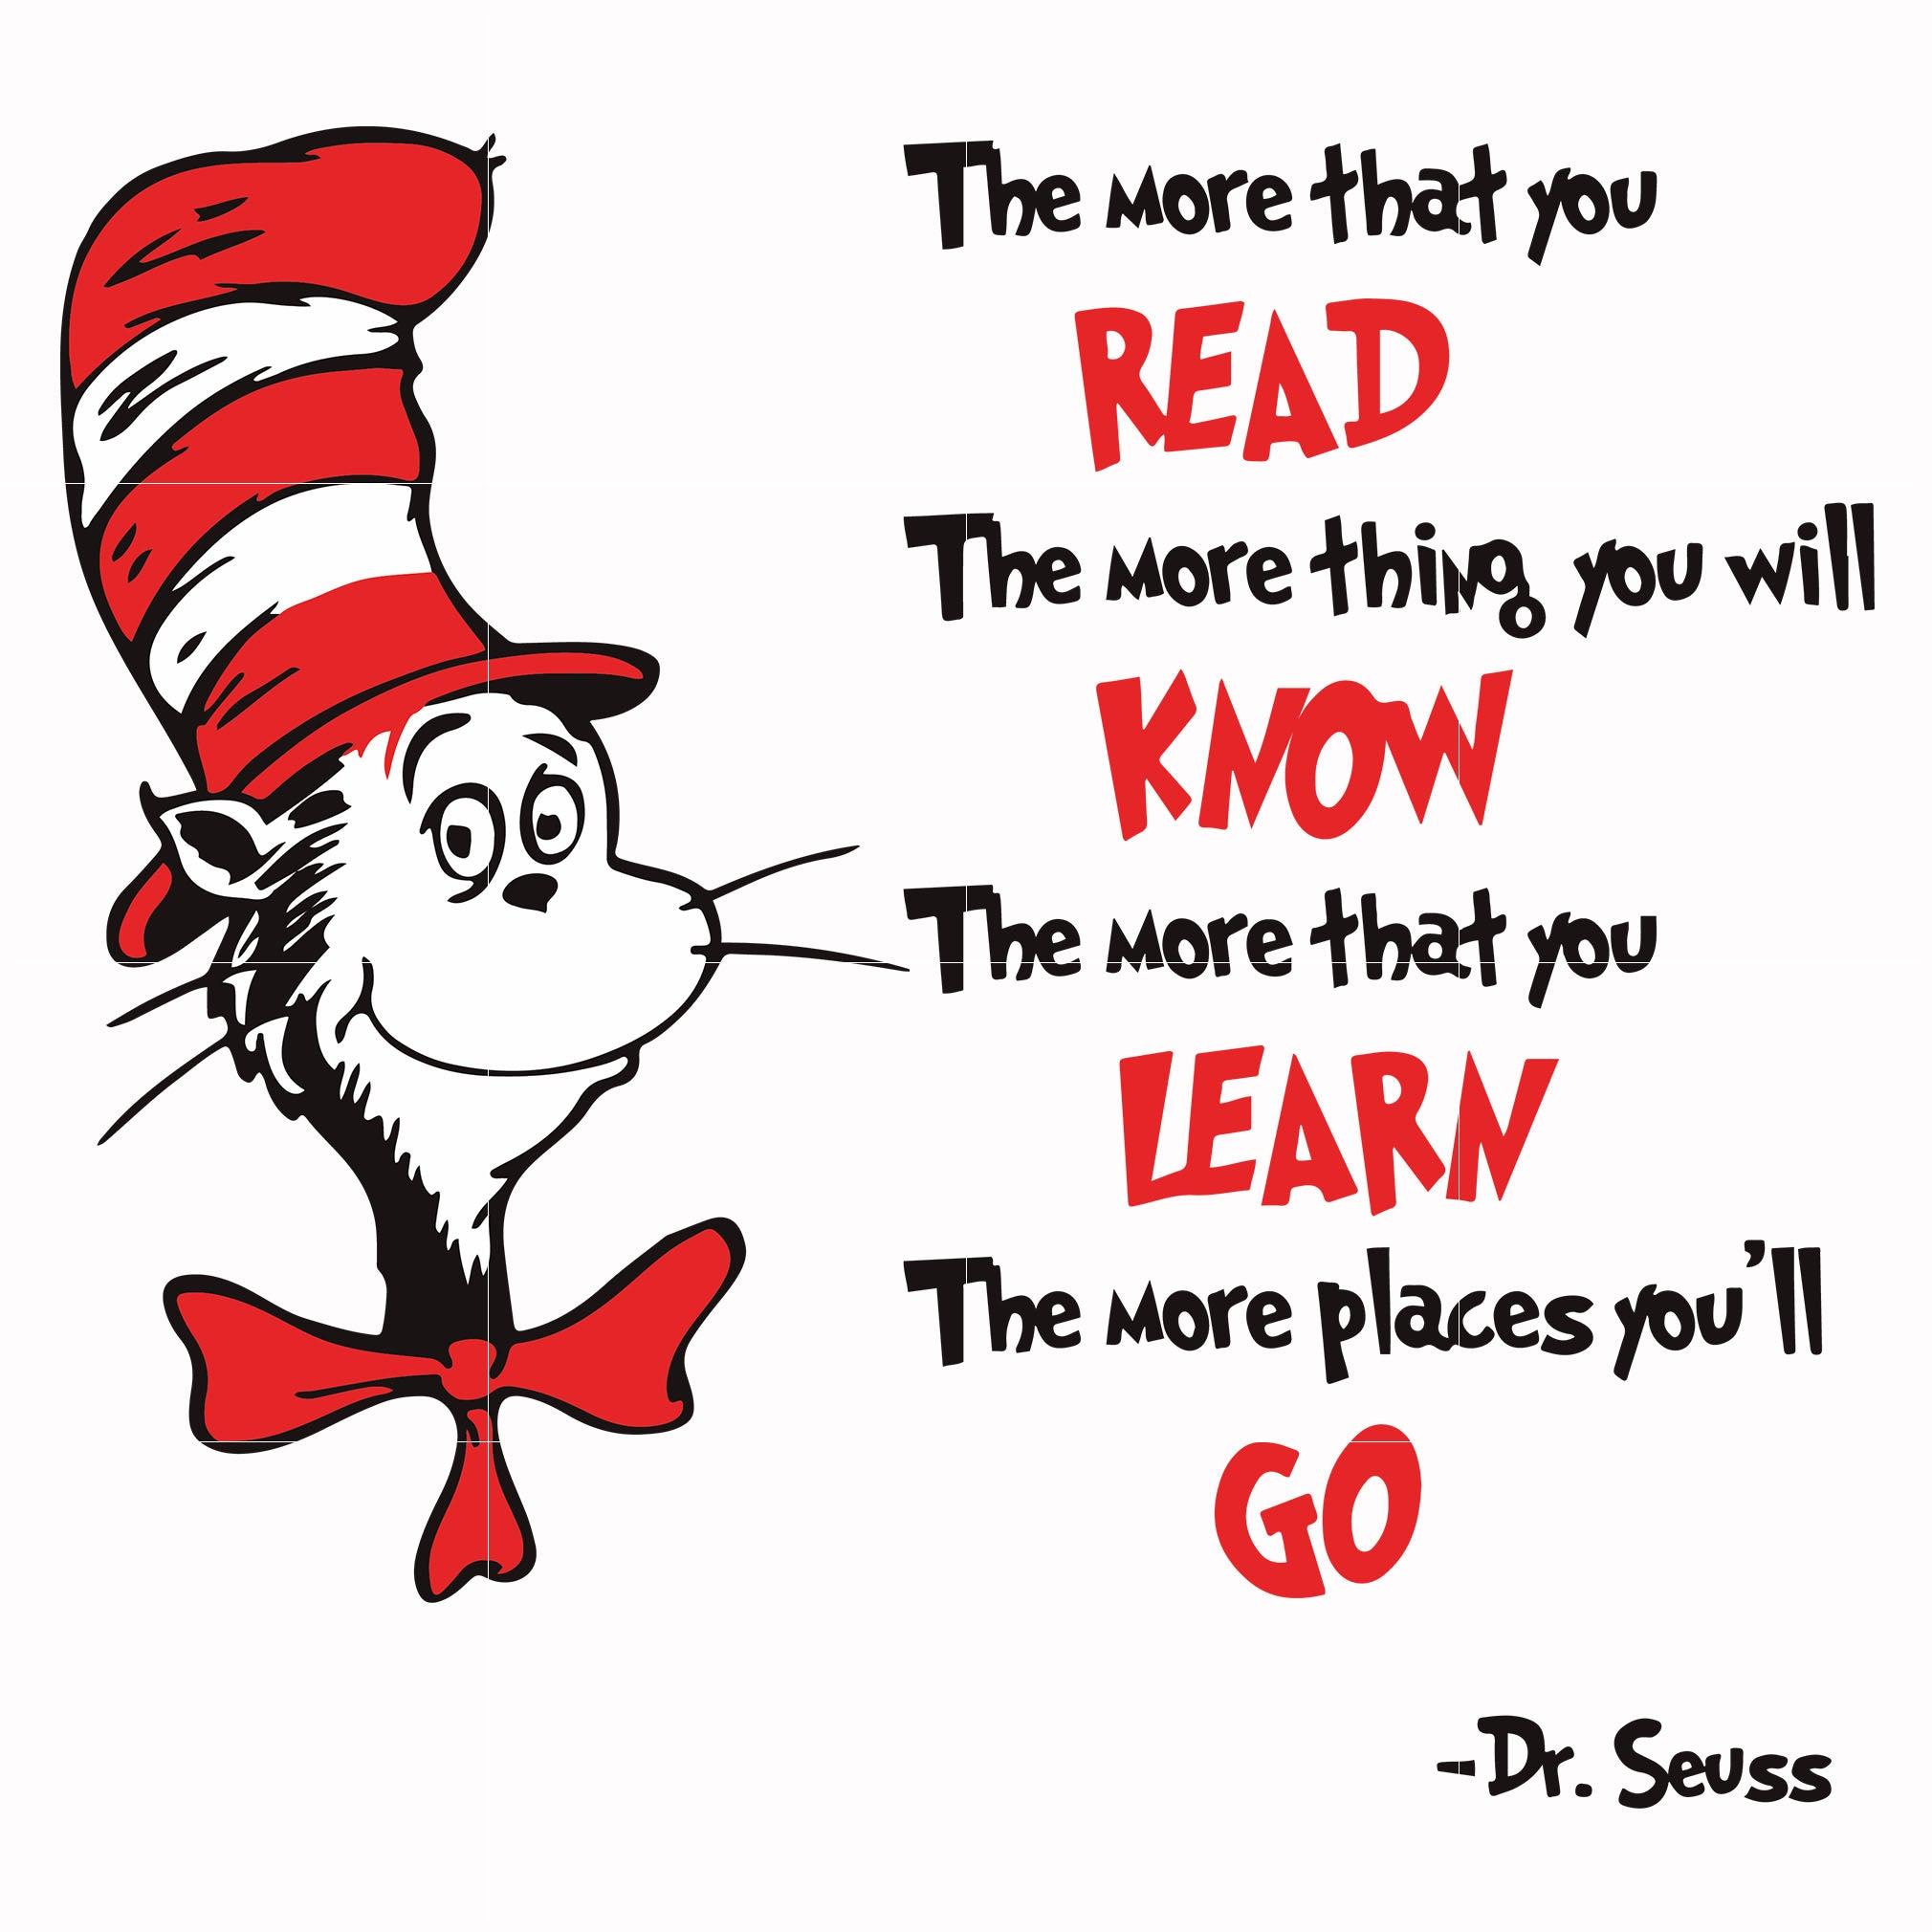 The more that you read the more thing you will know, thing one thing two, dr seuss svg, dr seuss quotes, digital file